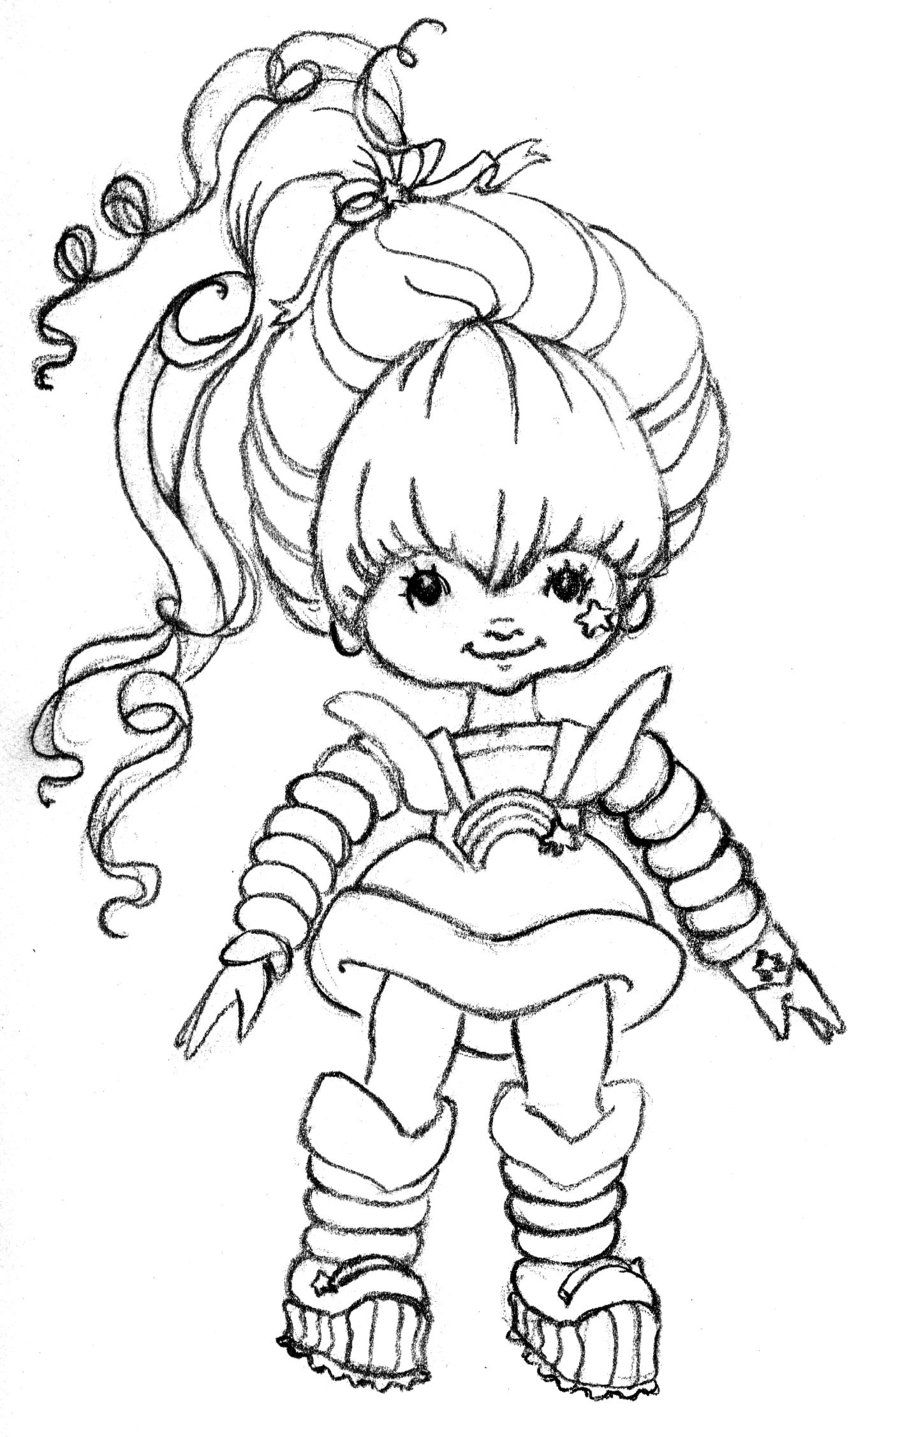 D Rainbow Colouring Pages Cartoon Coloring Pages Coloring Pages Poppy Coloring Page